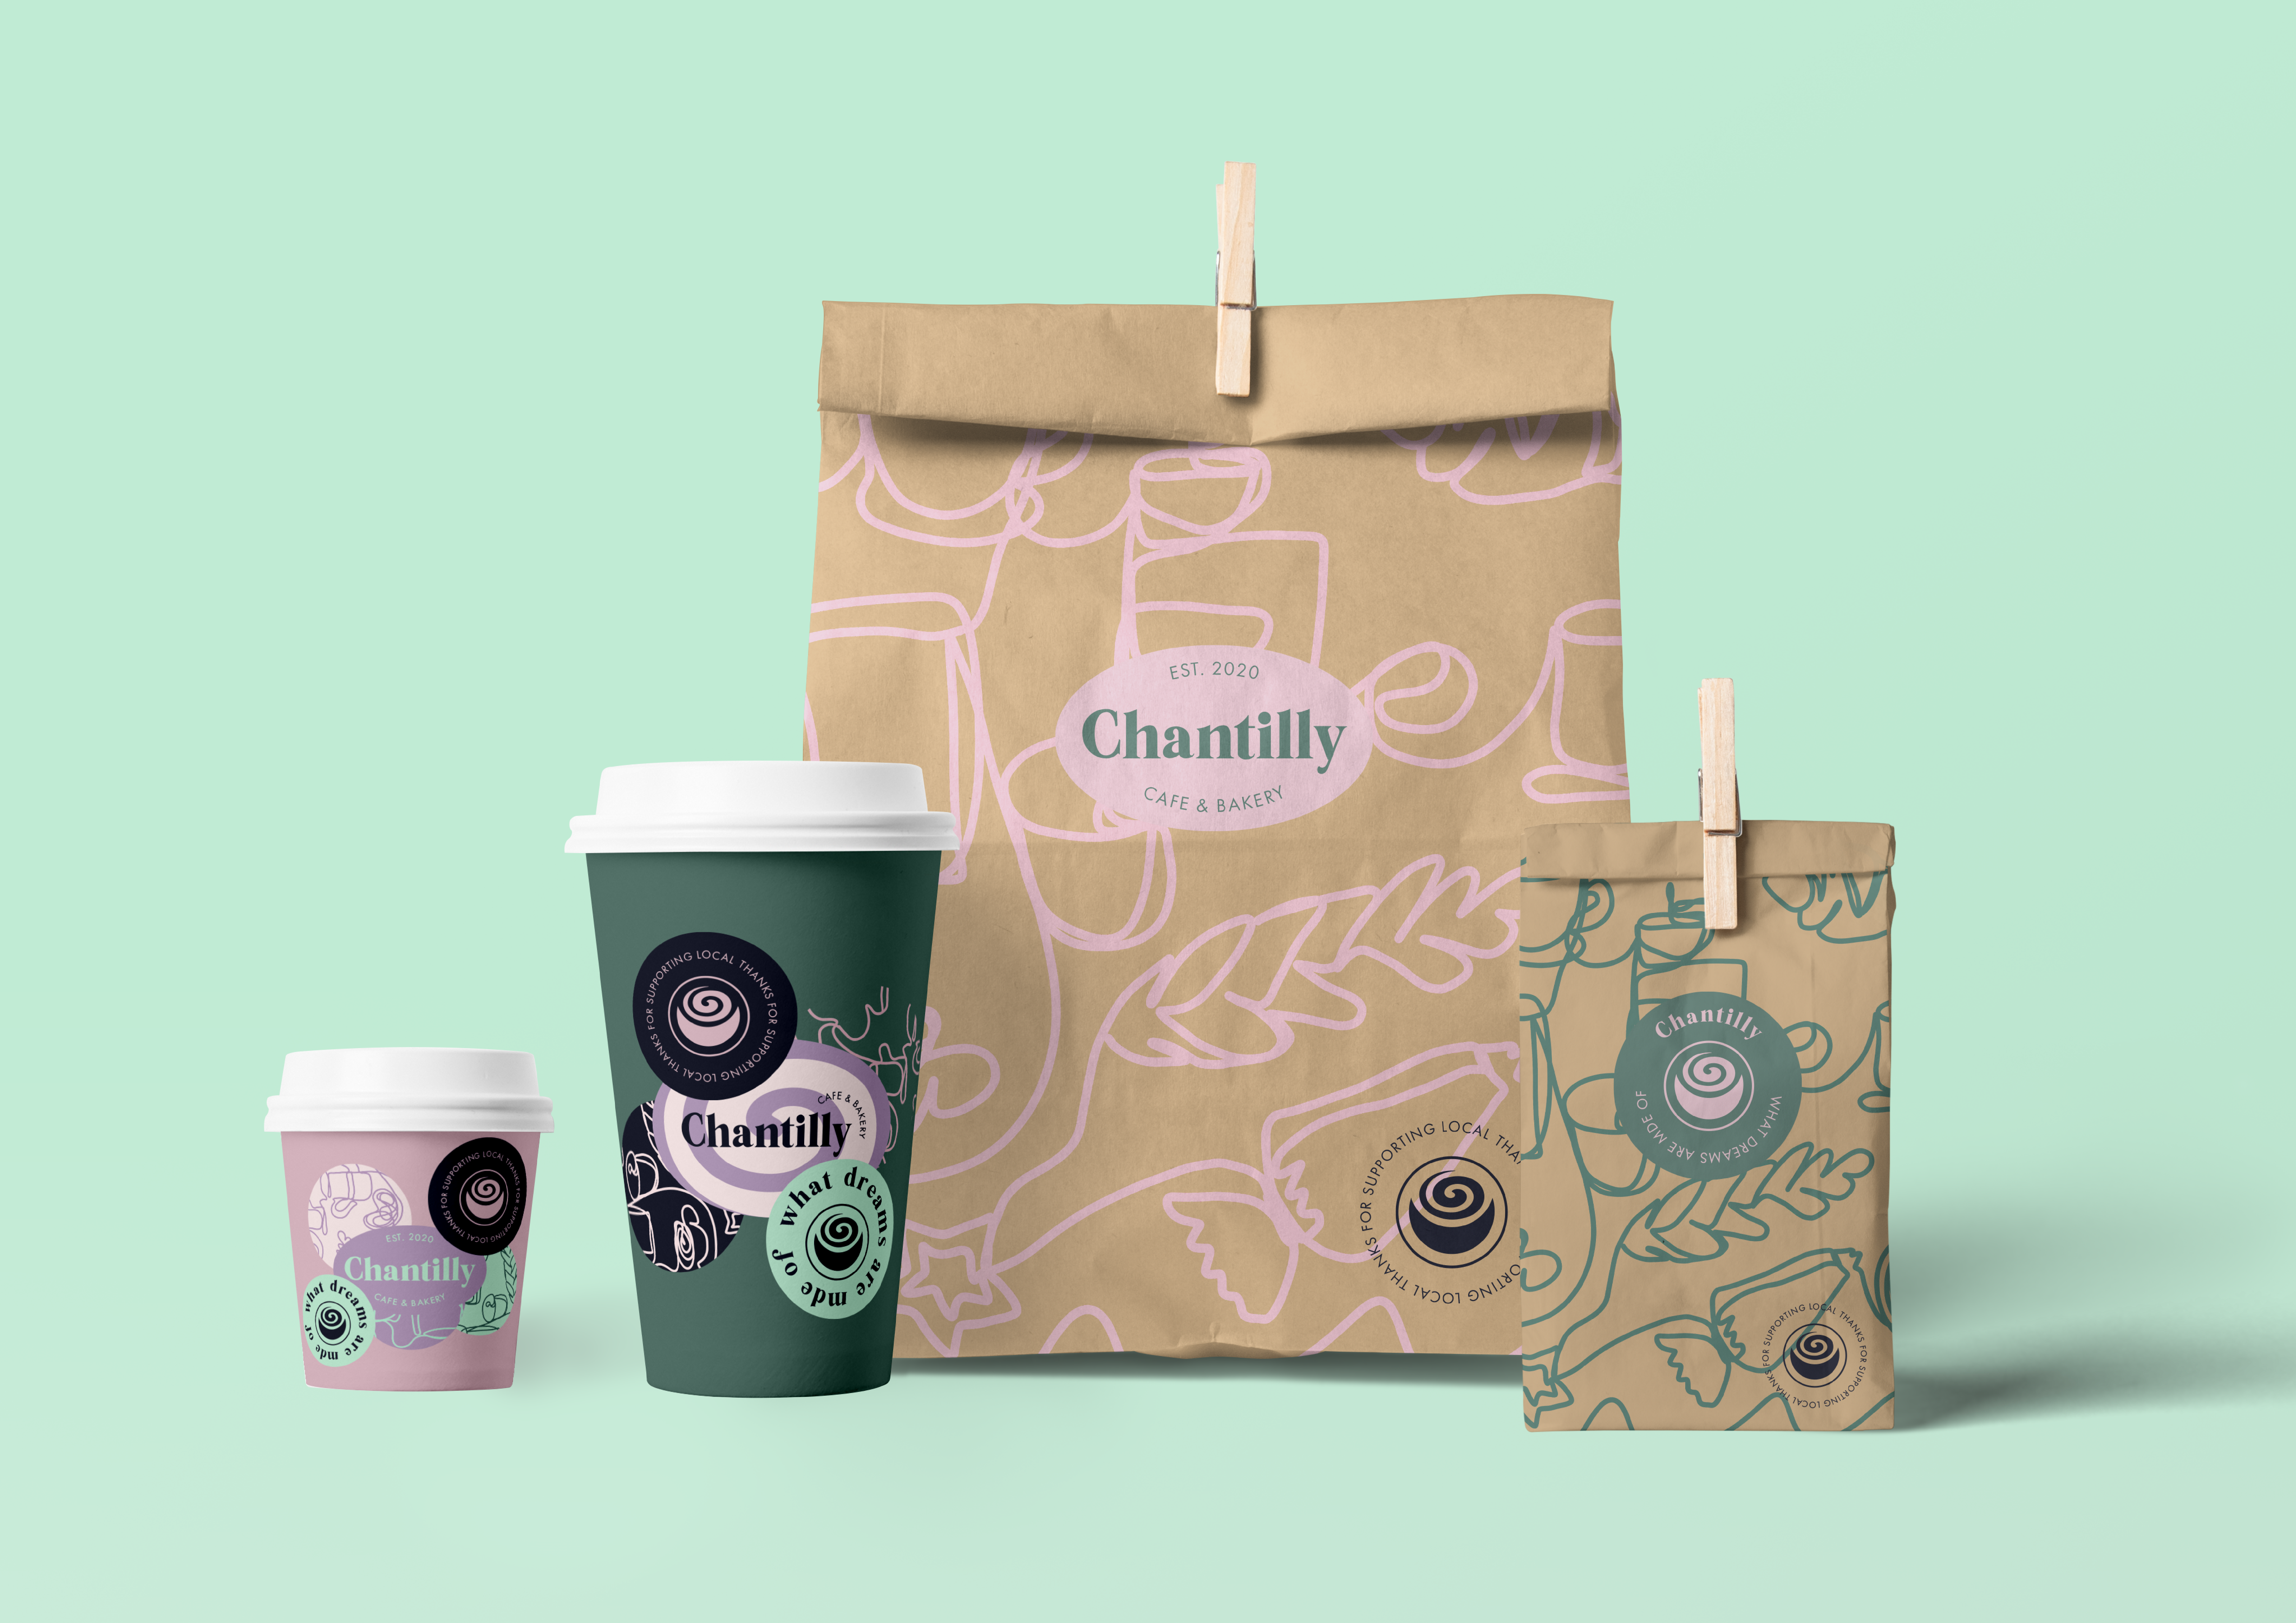 Chantilly packaging designs